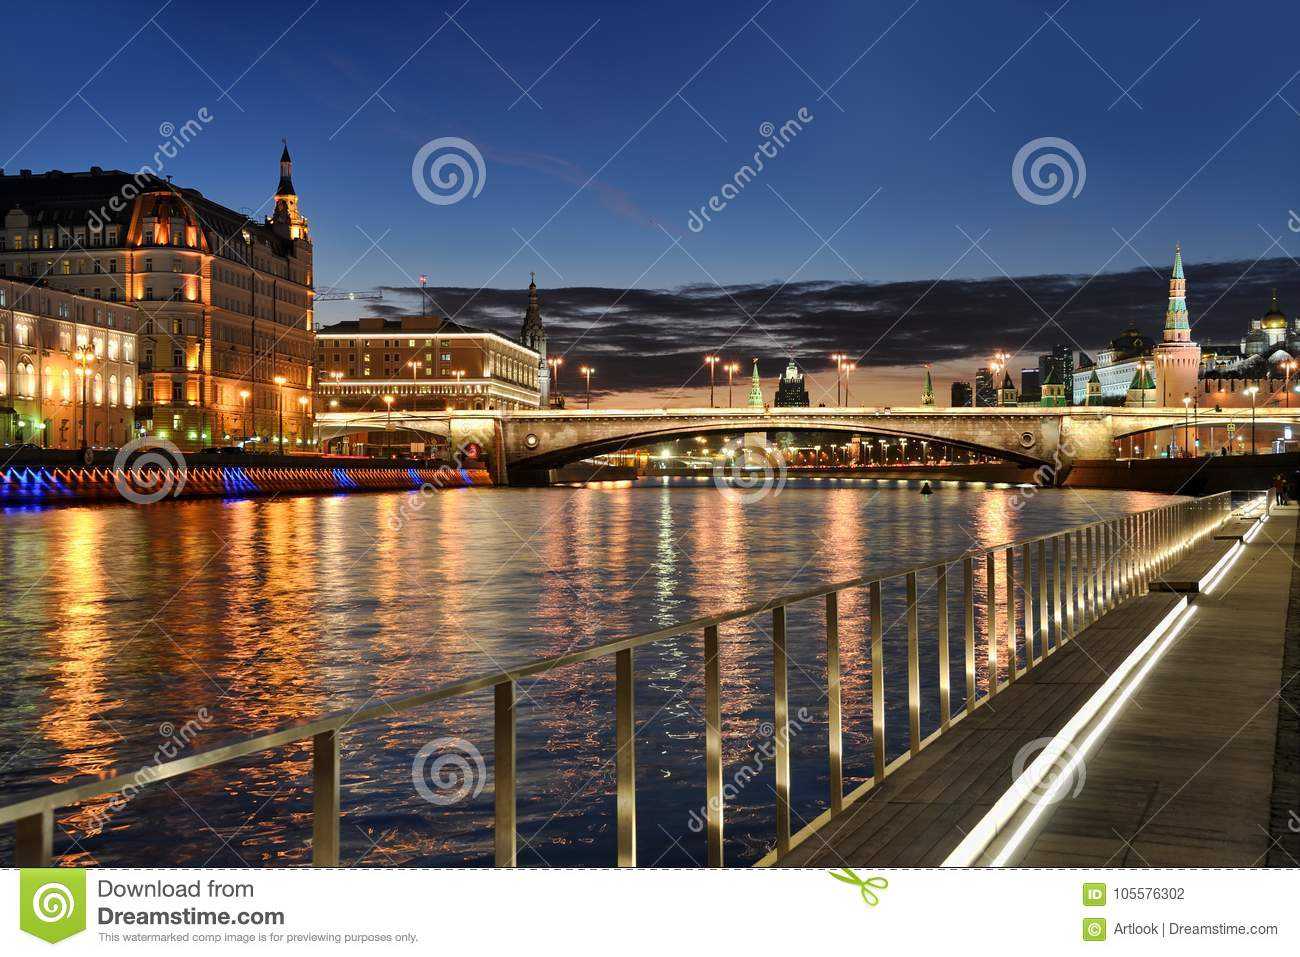 Moscow City Lights with River Reflections Against Dusk Sky